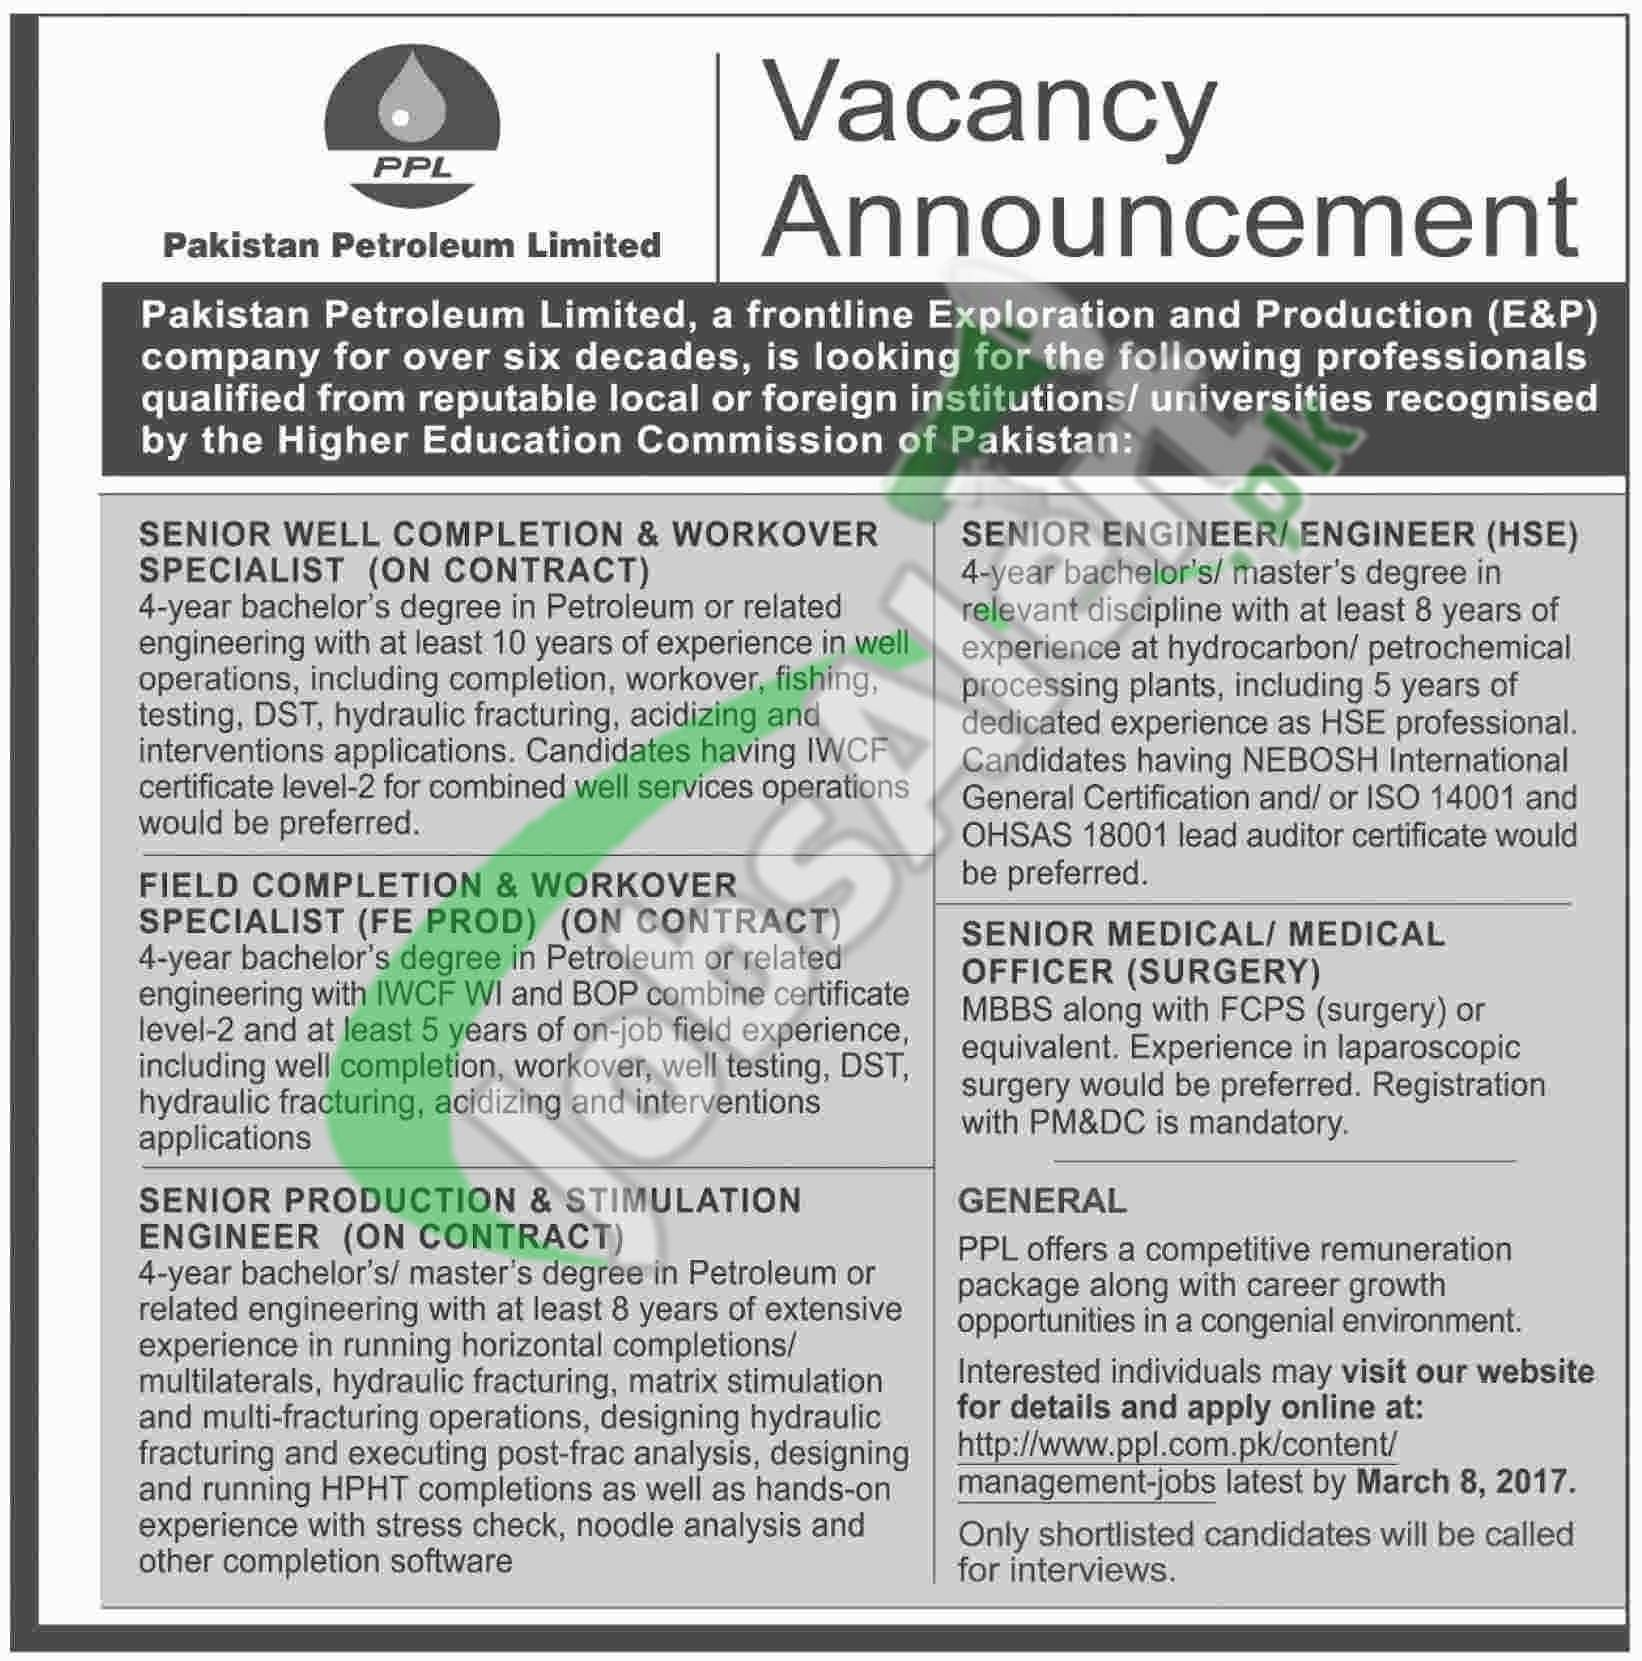 Ppl Jobs Advertisement 2017 March Latest Career Opportunities